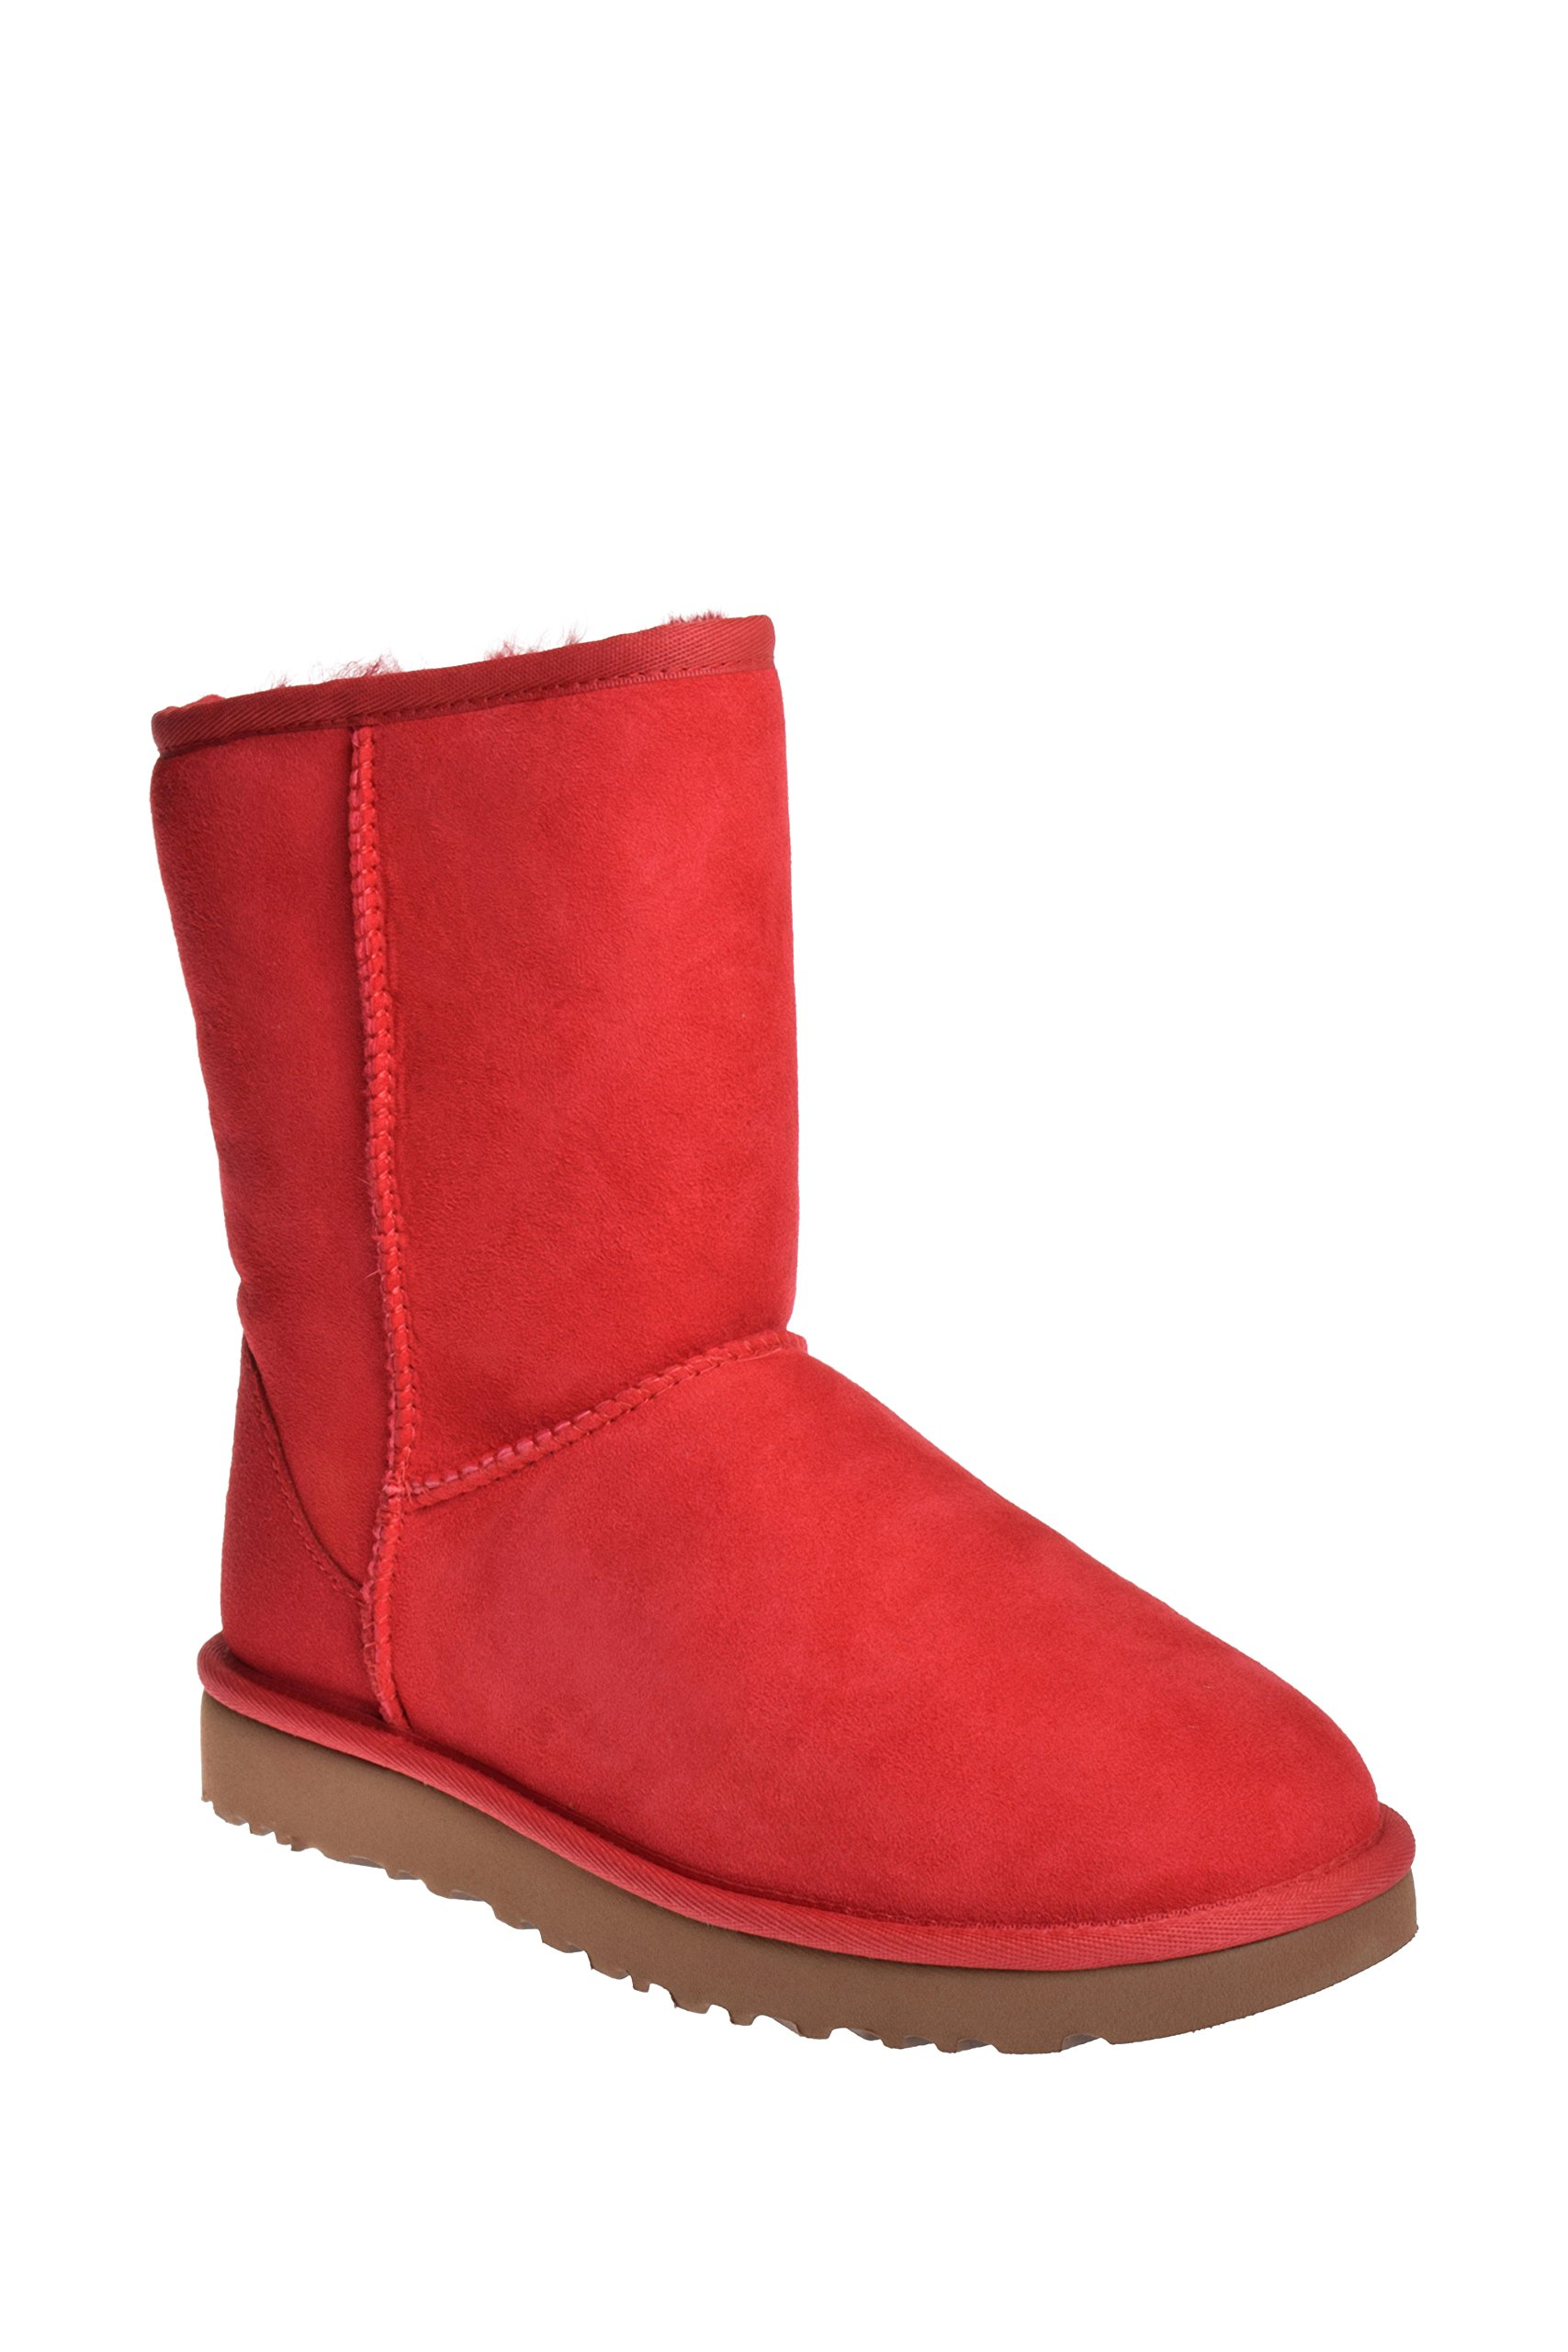 UGG Womens Classic Short II Winter Boot Ribbon Red Size 6